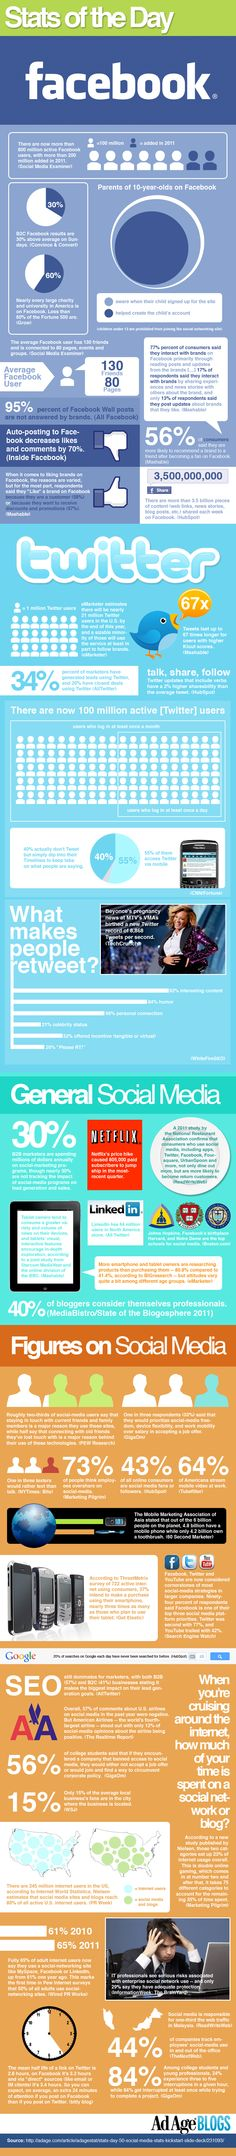 social media info graphic... did you know that more than 50% of college students wouldn't take a job at a company that banned social media?